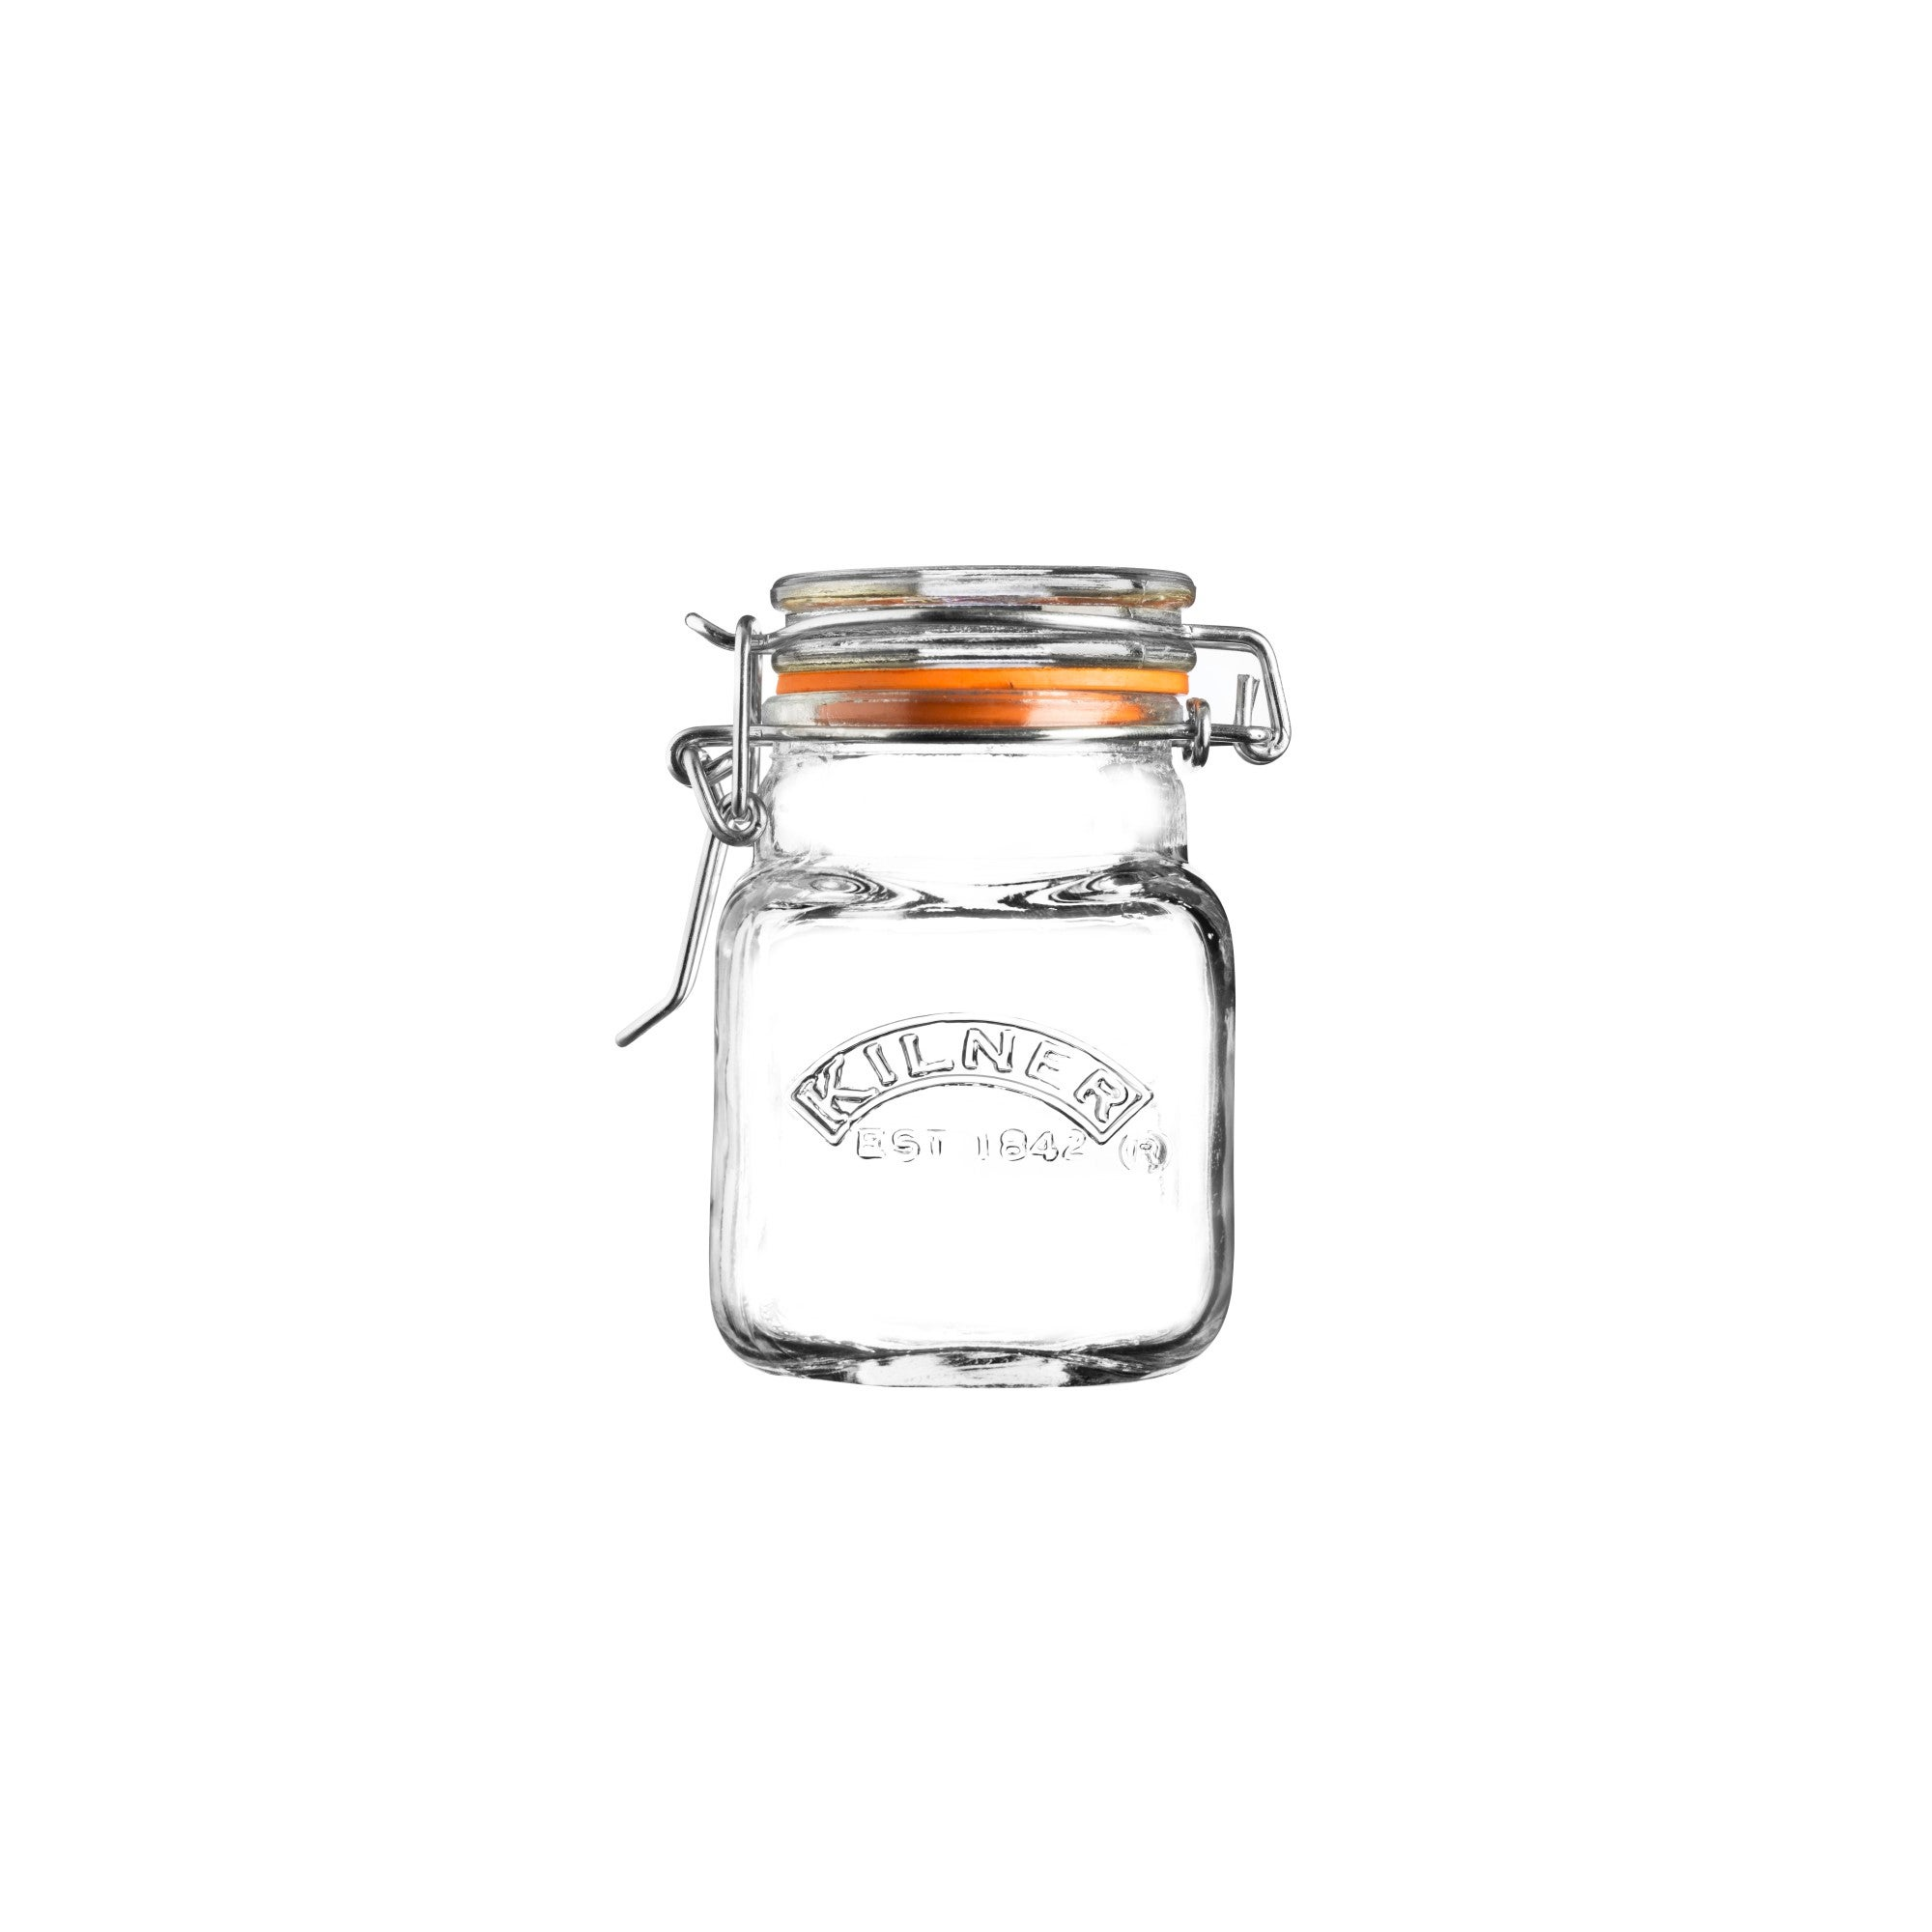 Kilner 70ml Spice Jar